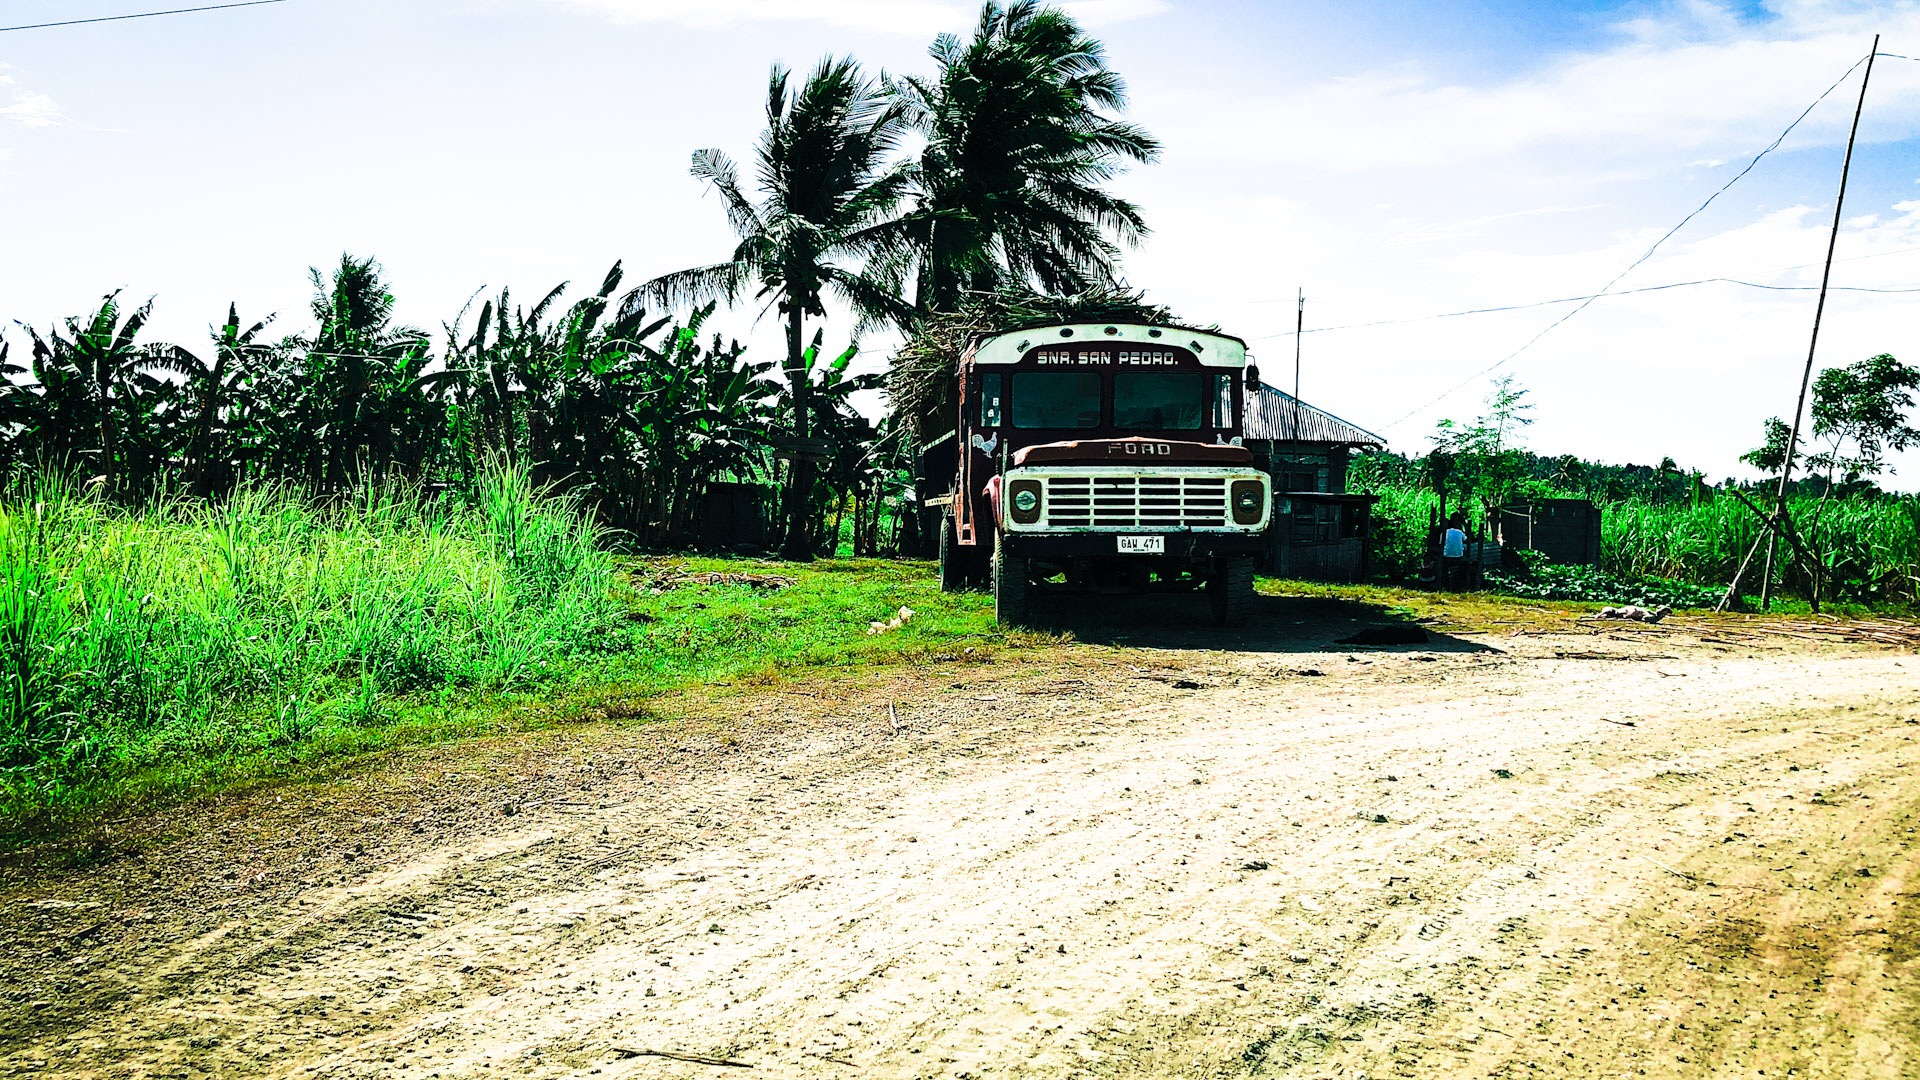 Take a ride with us on the motorbike as we leave the village and venture through the beauty of the sugar cane fields.